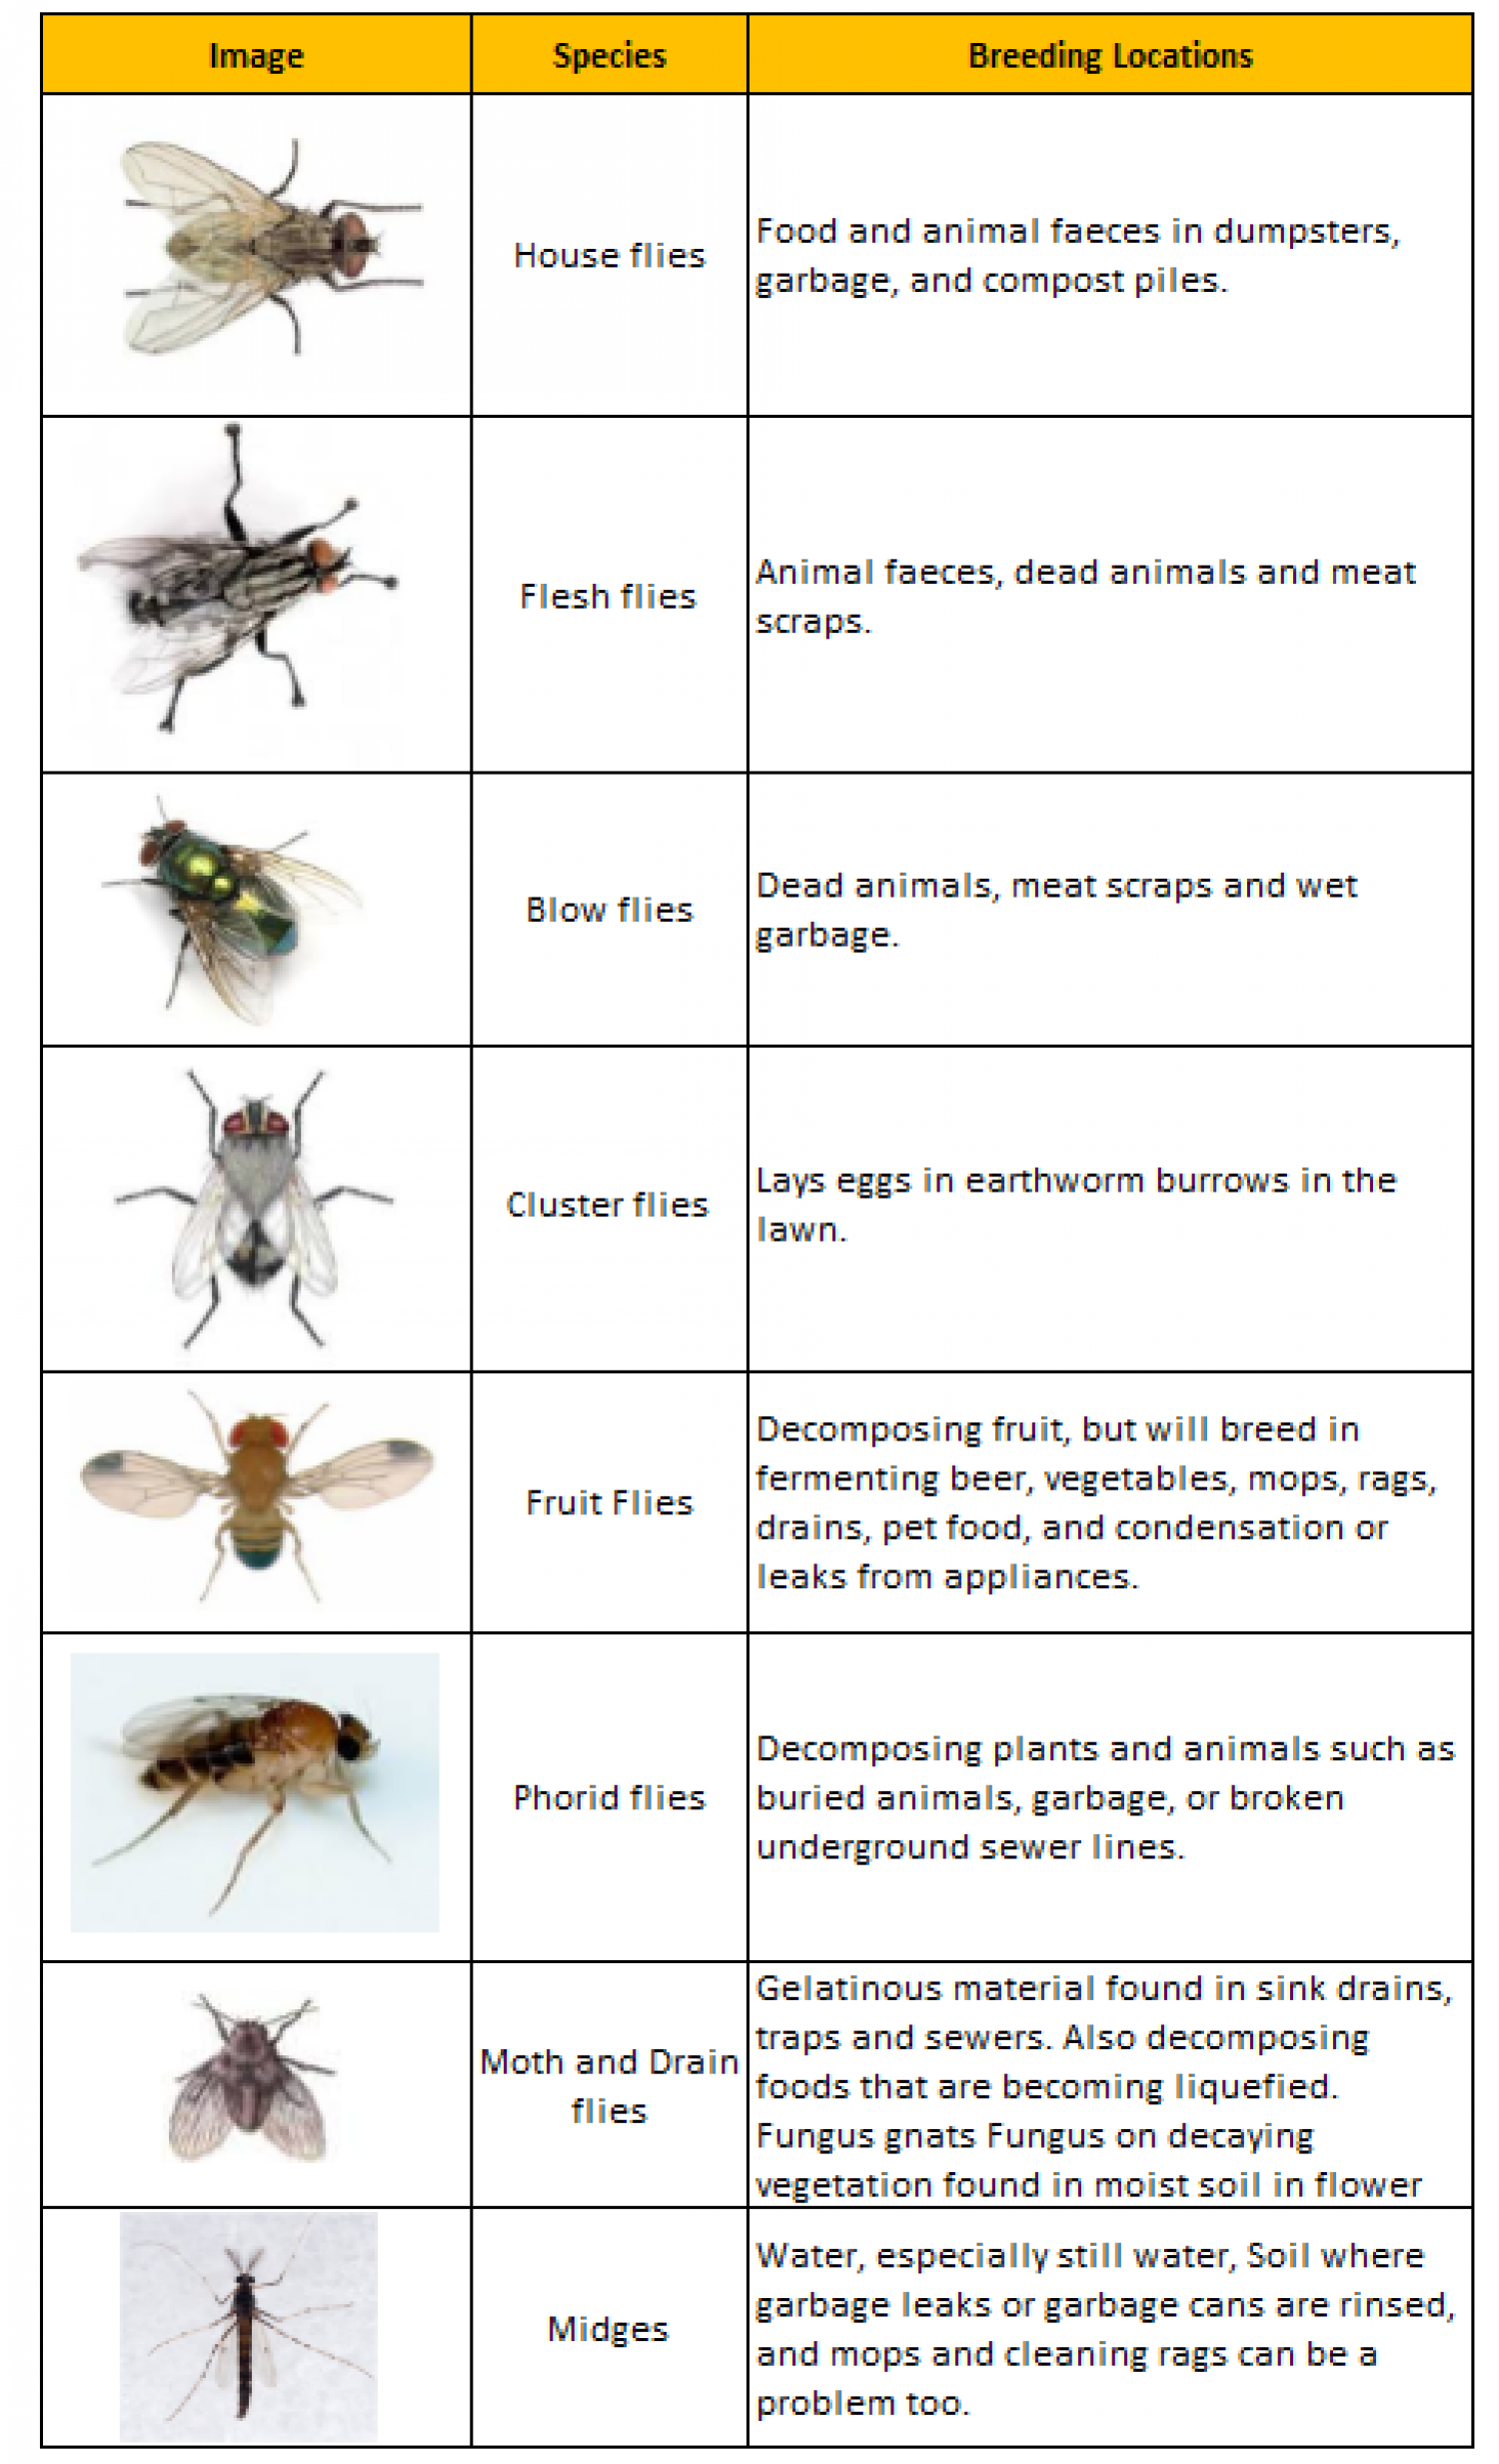 Different Types on Flies Commonly Found in Homes Infographic